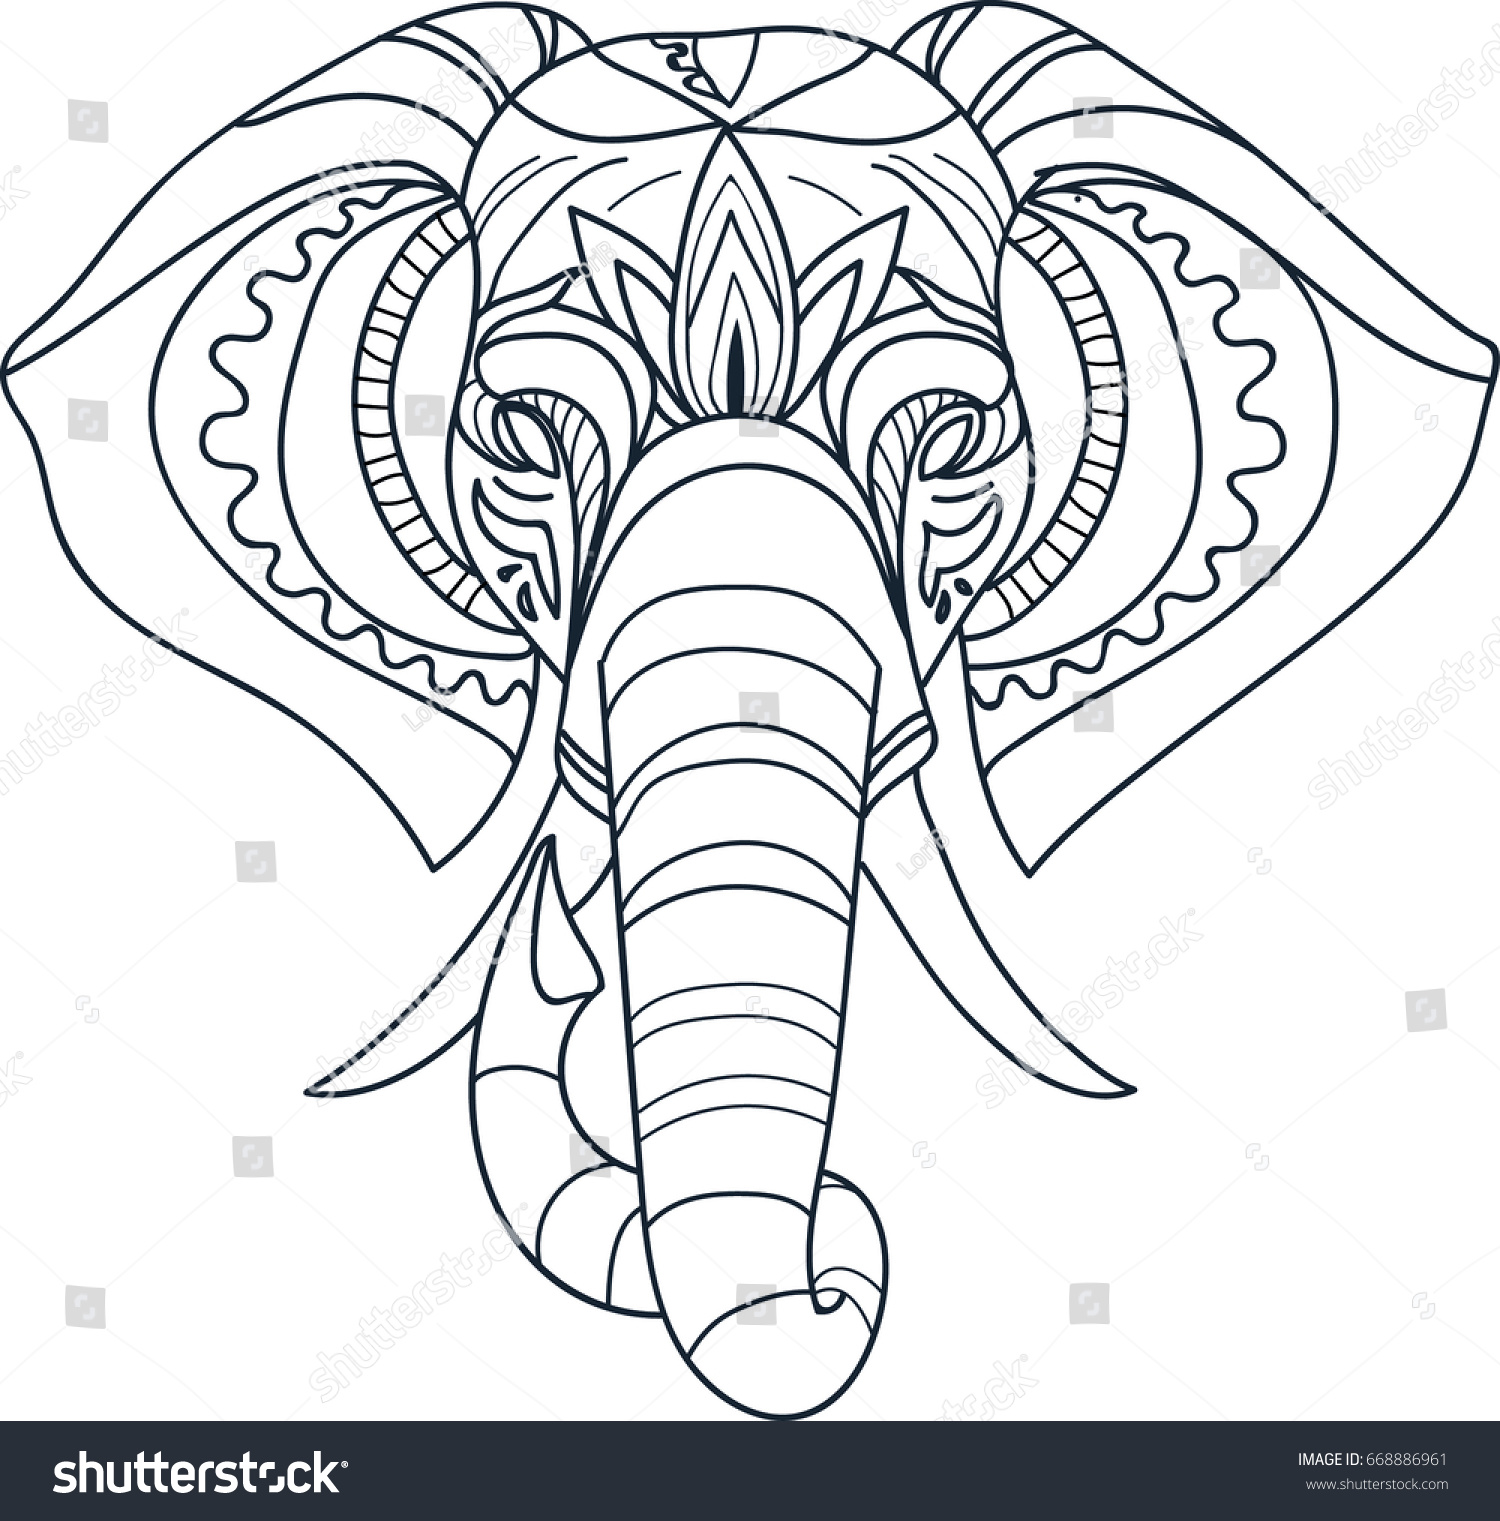 Black White Elephant Face Drawn Stock Vector HD (Royalty Free ...